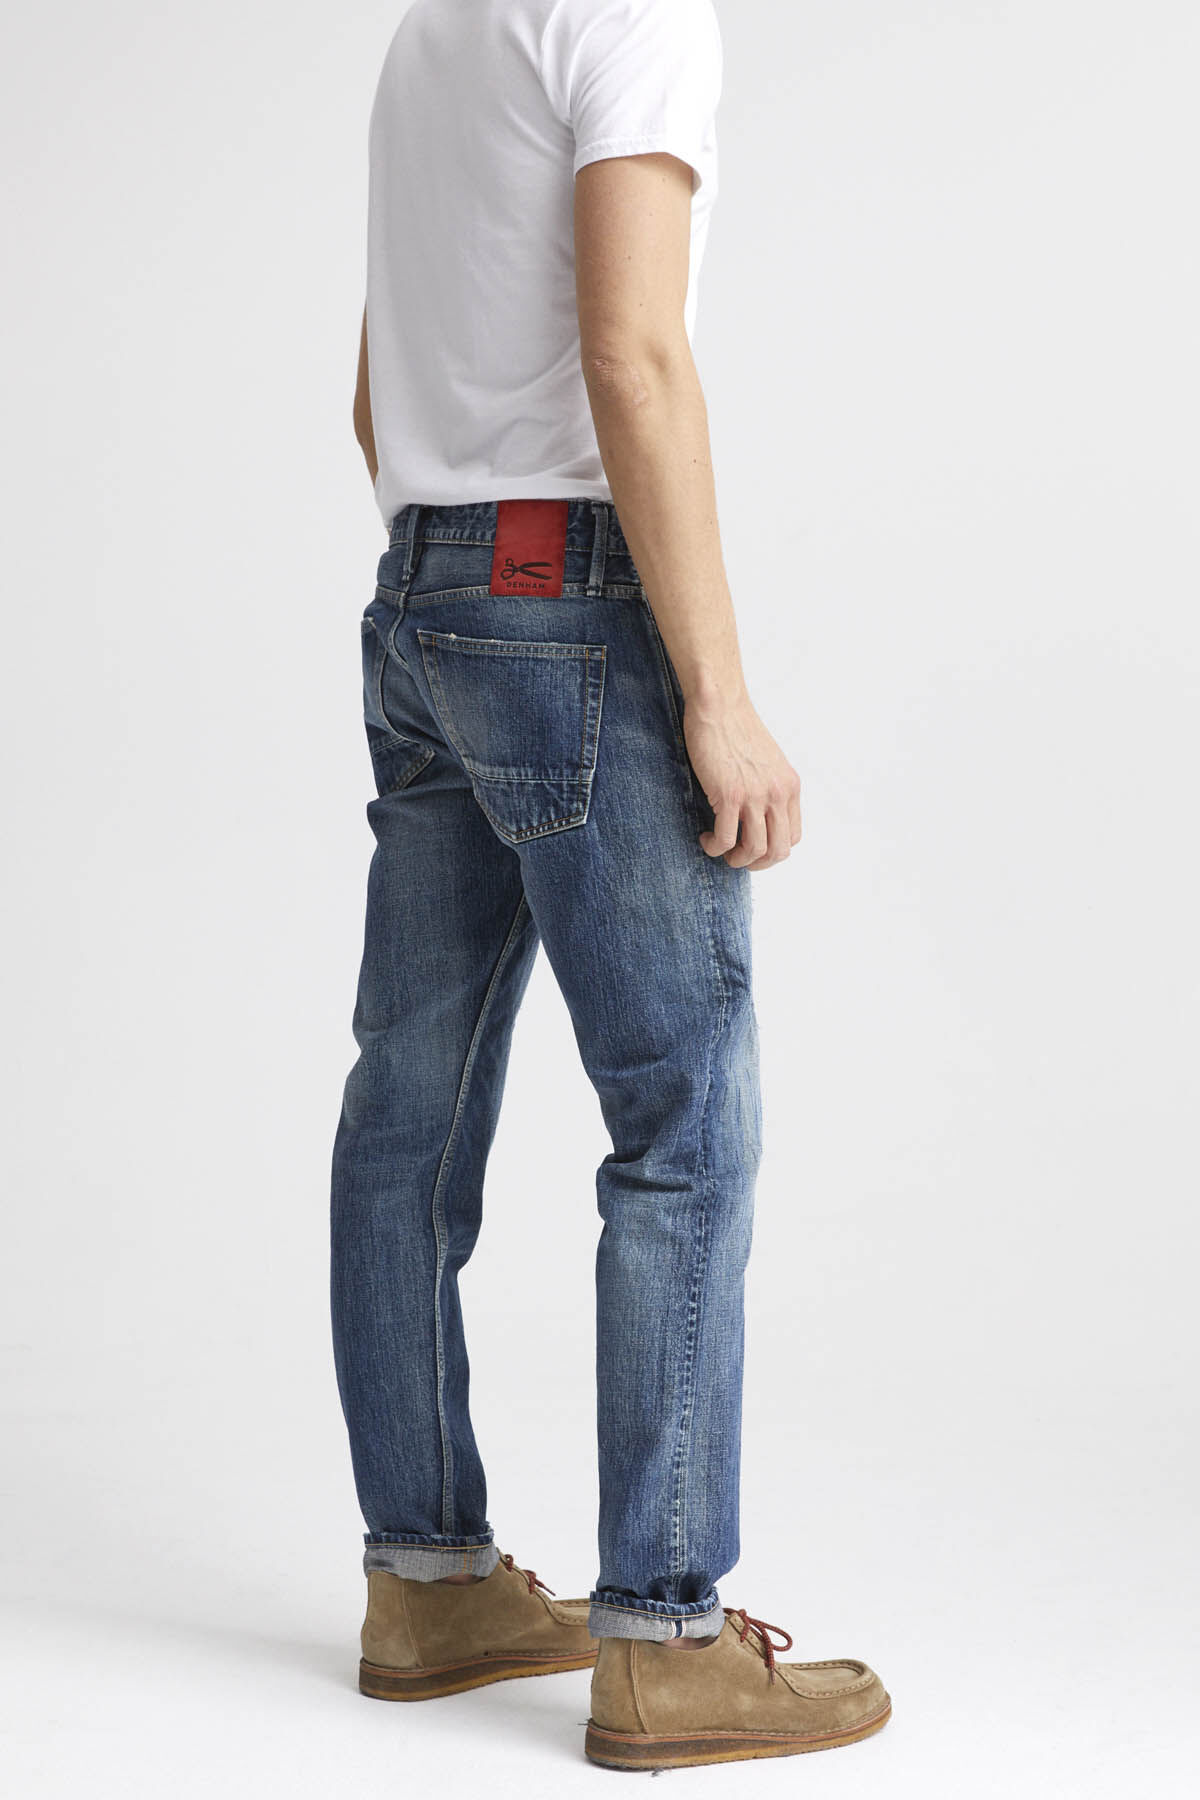 RAZOR Selvedge Denim, Whisker Pattern  - Slim Fit